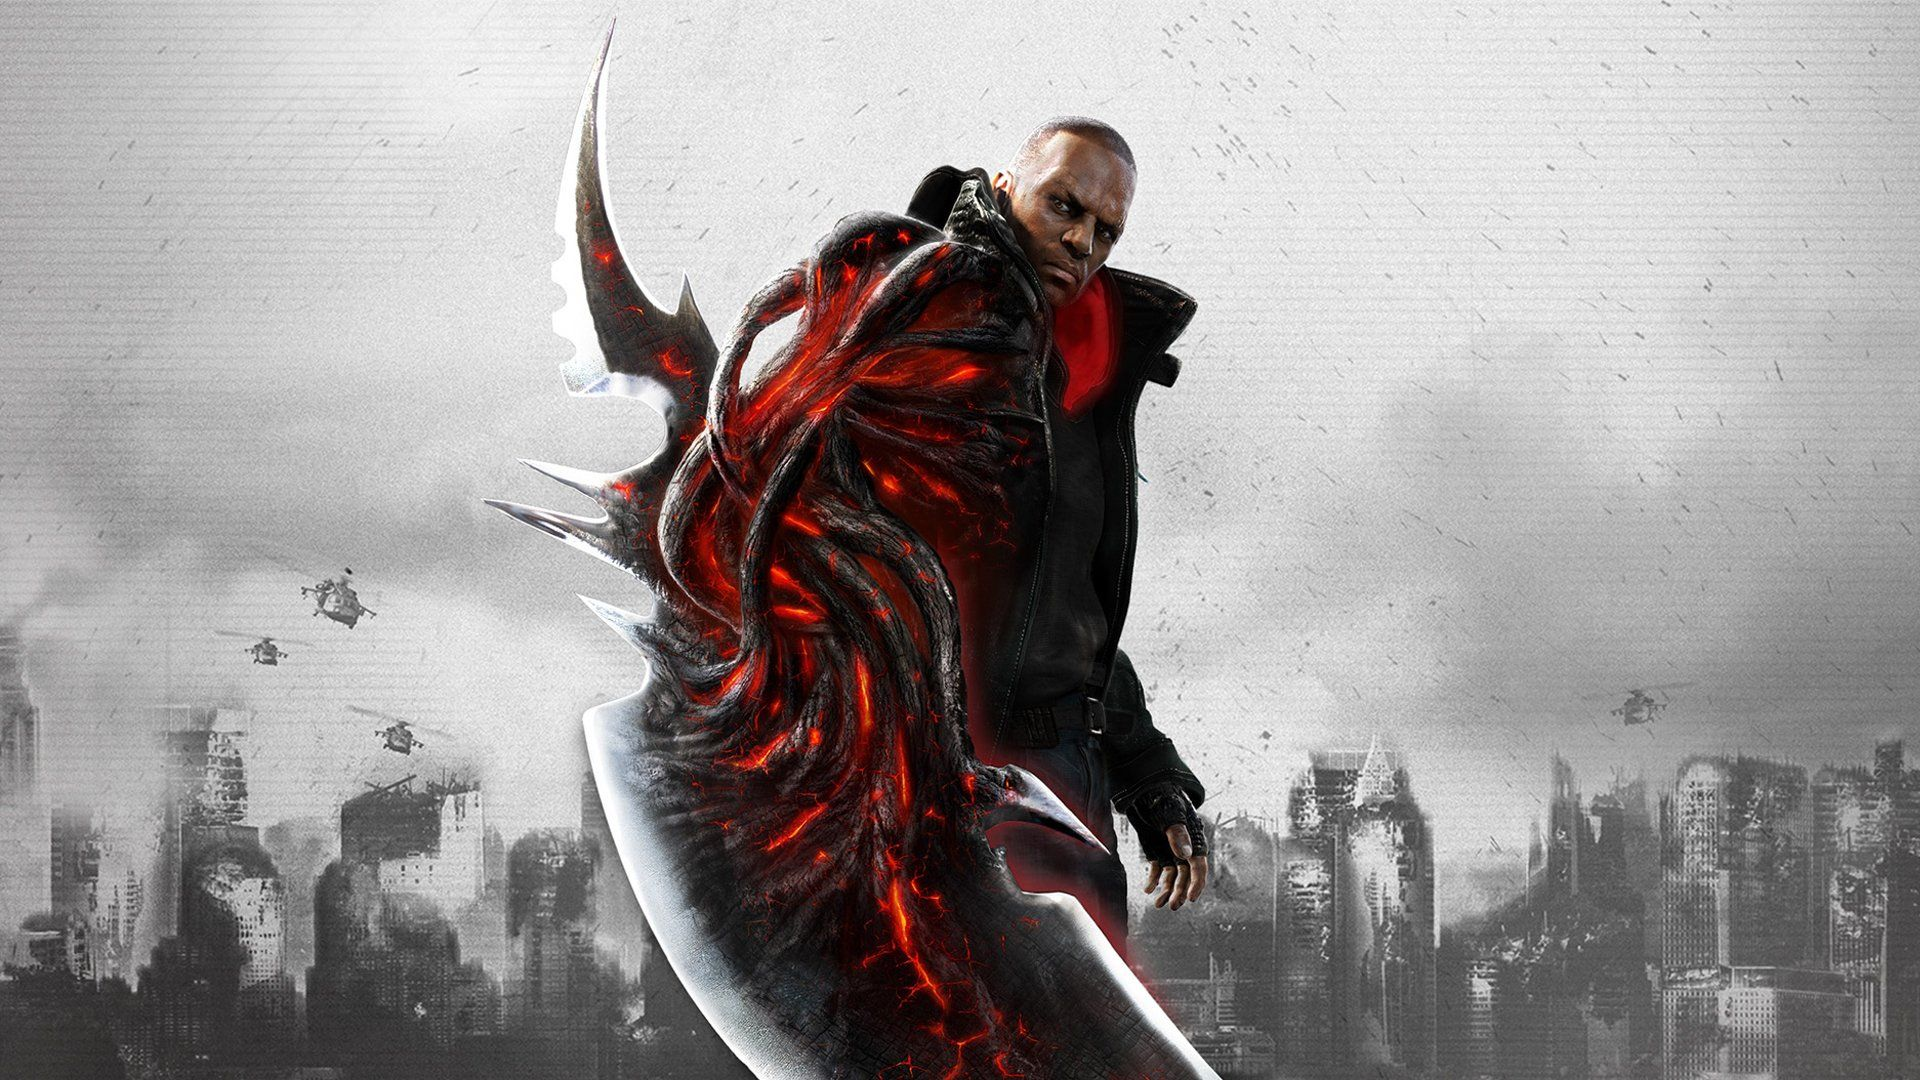 31 prototype 2 hd wallpapers | backgrounds - wallpaper abyss | best